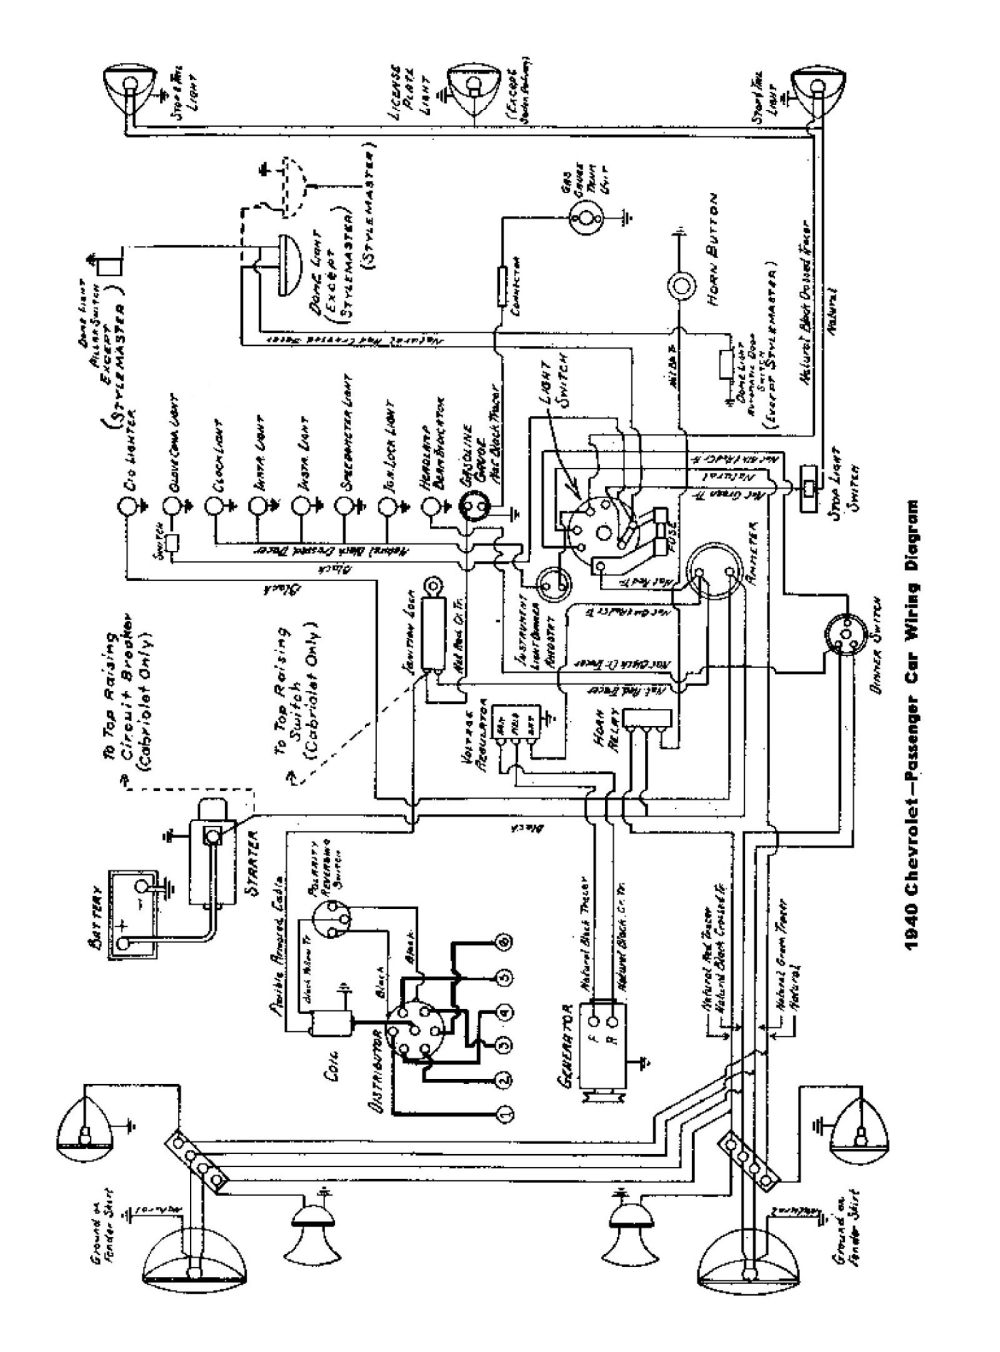 medium resolution of chevy wiring diagrams 51 ford fuel gauge wiring diagram 1940 passenger car wiring